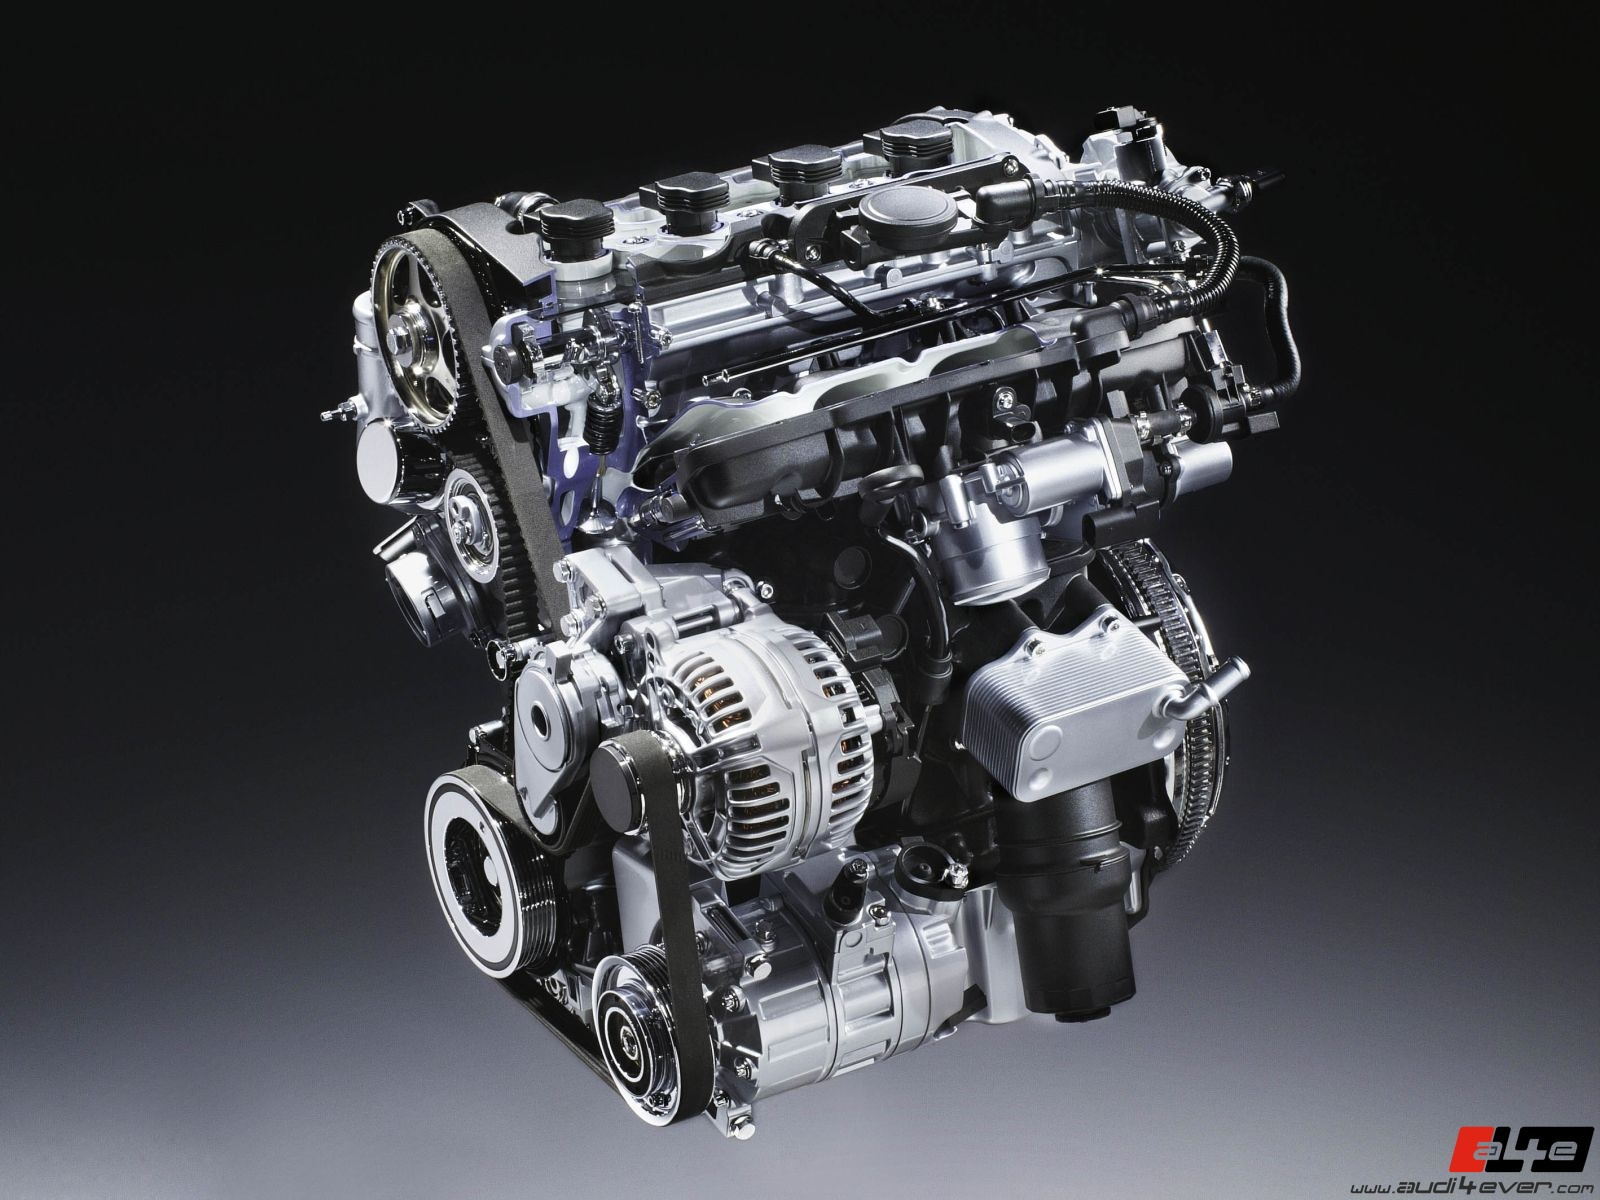 A3 2008 Manual Gearbox Oil Specifications